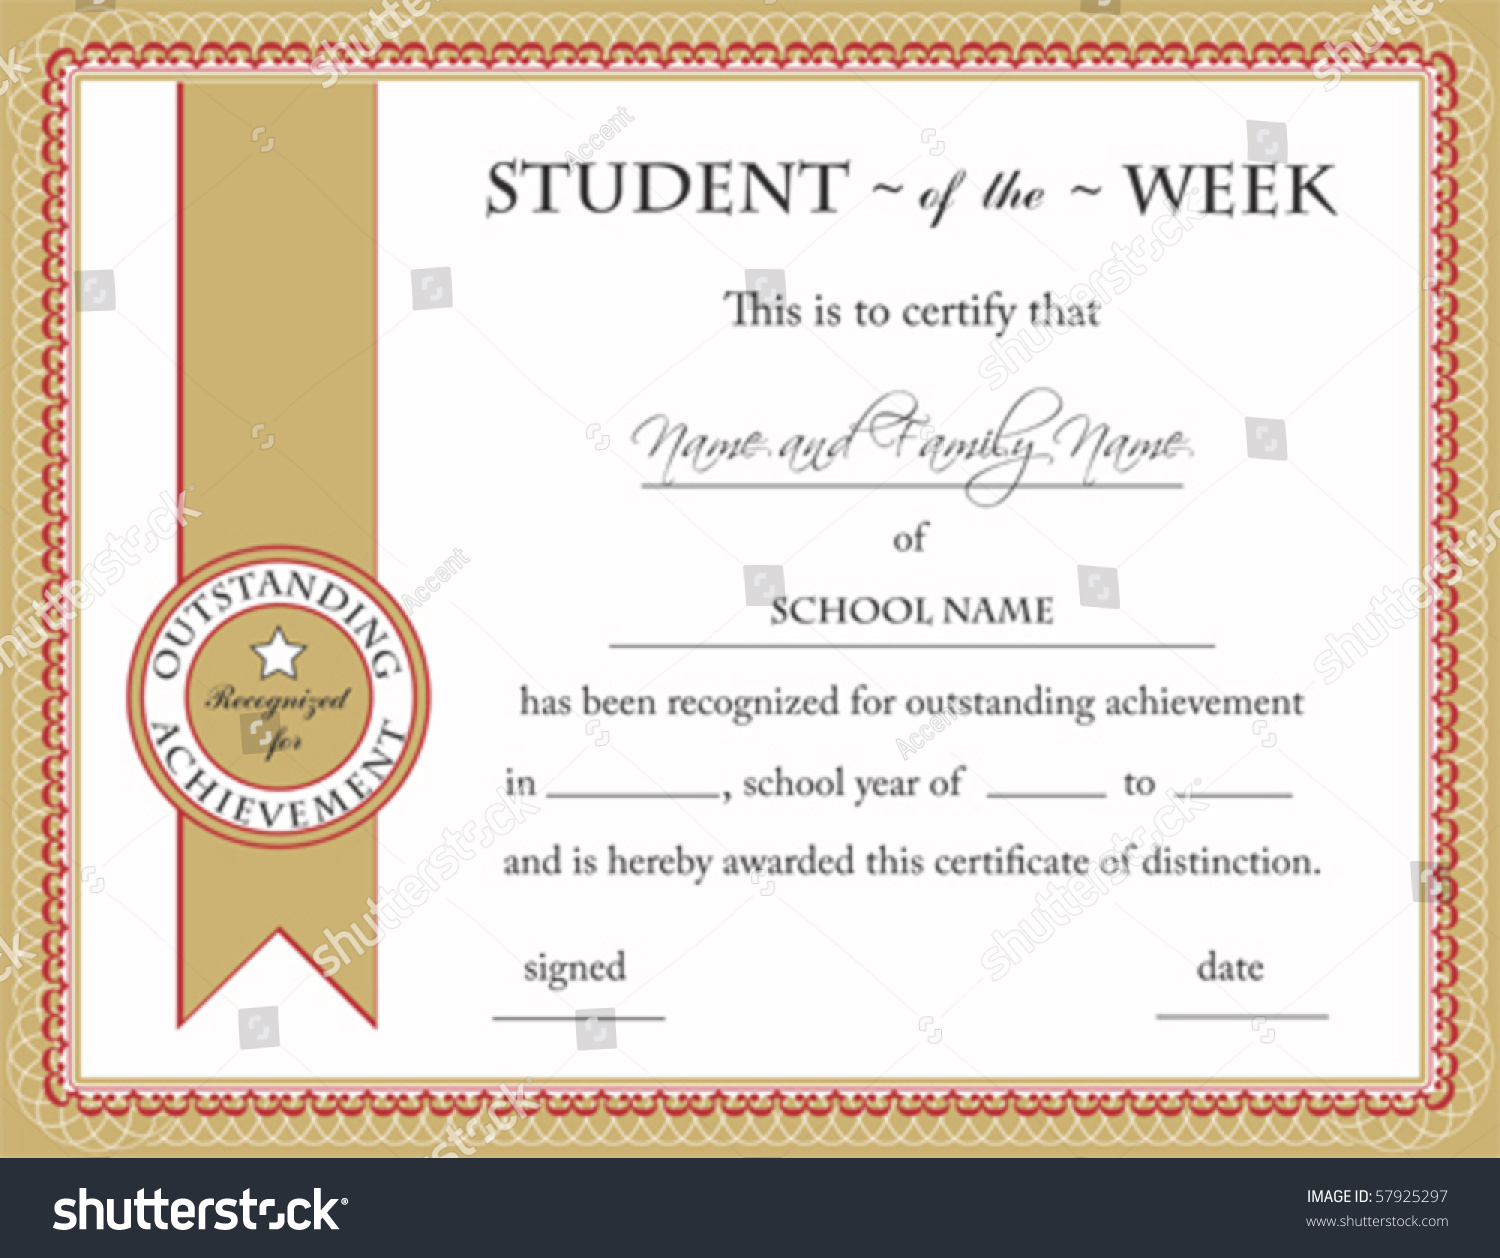 Free Printable Certificates amp Blank Awards Certificate